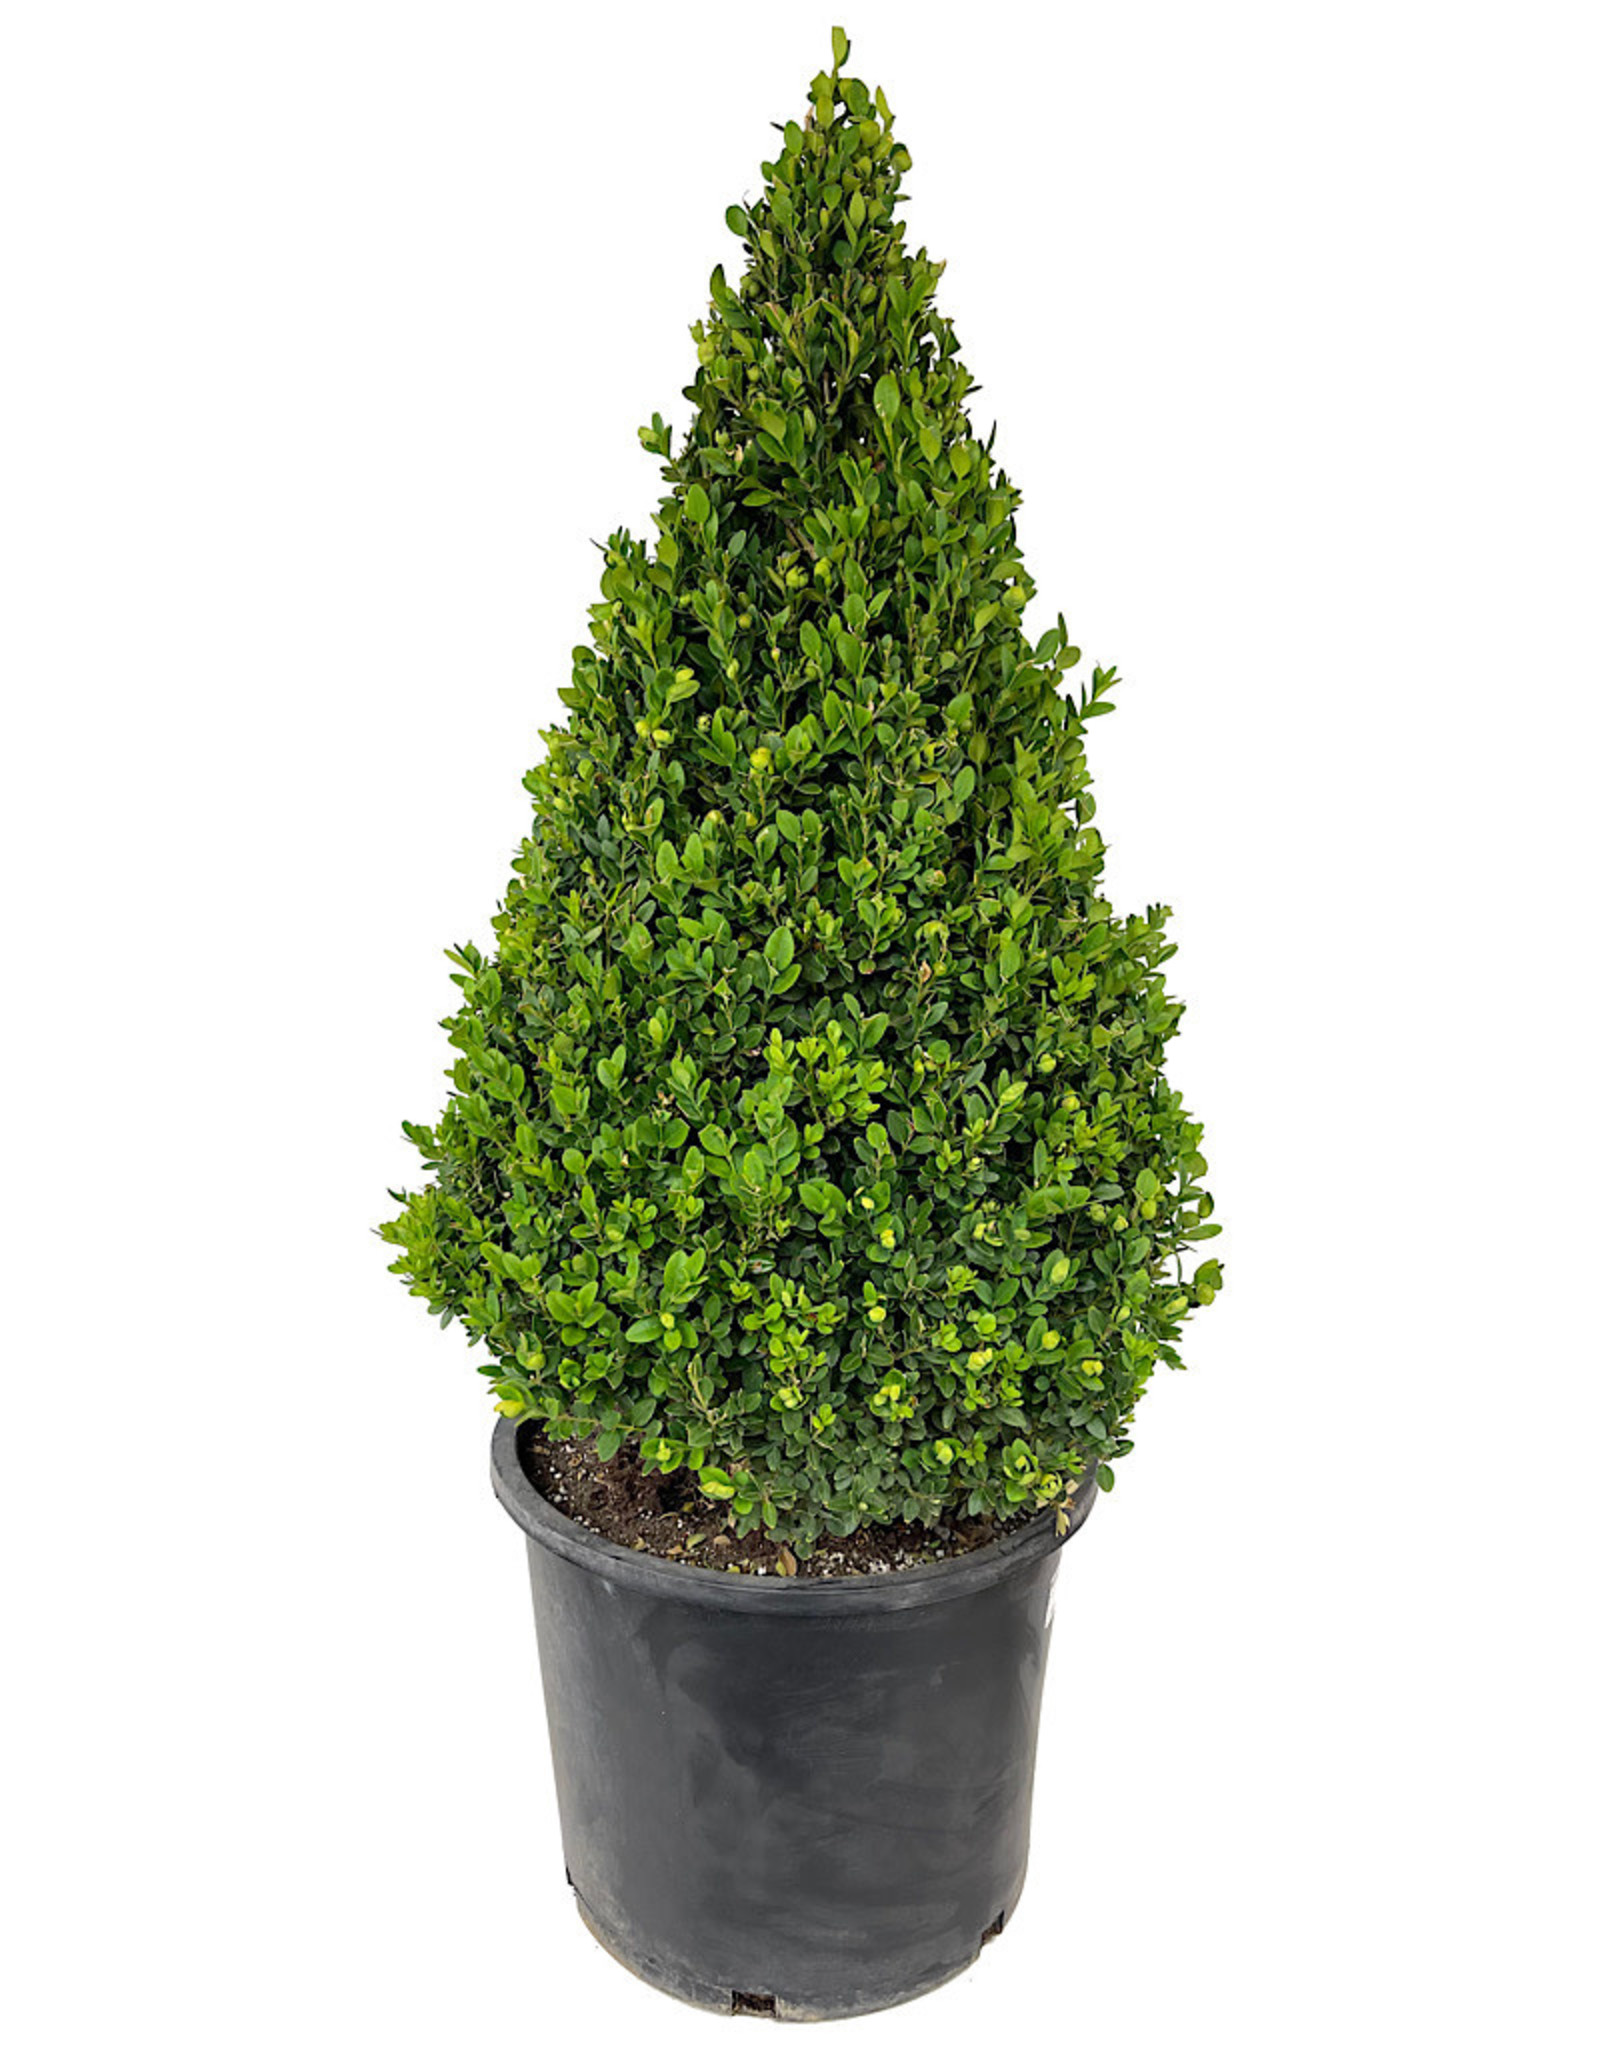 Buxus Sempervirens Cone Topiary 27-30 Inch